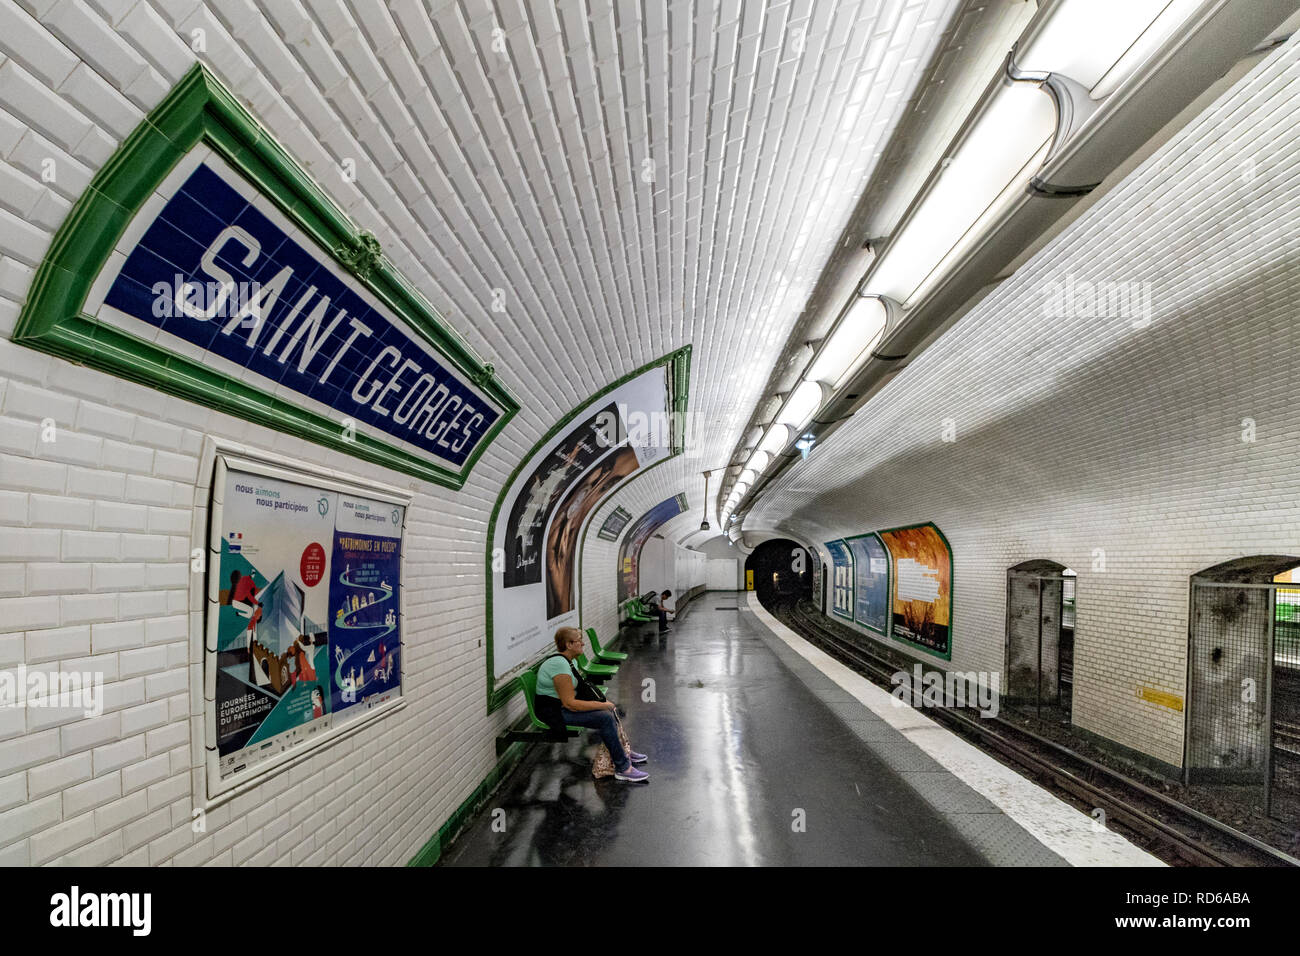 People waiting for a Paris Metro train at St Georges metro station , a white ceramic tiled staion in Paris,France - Stock Image